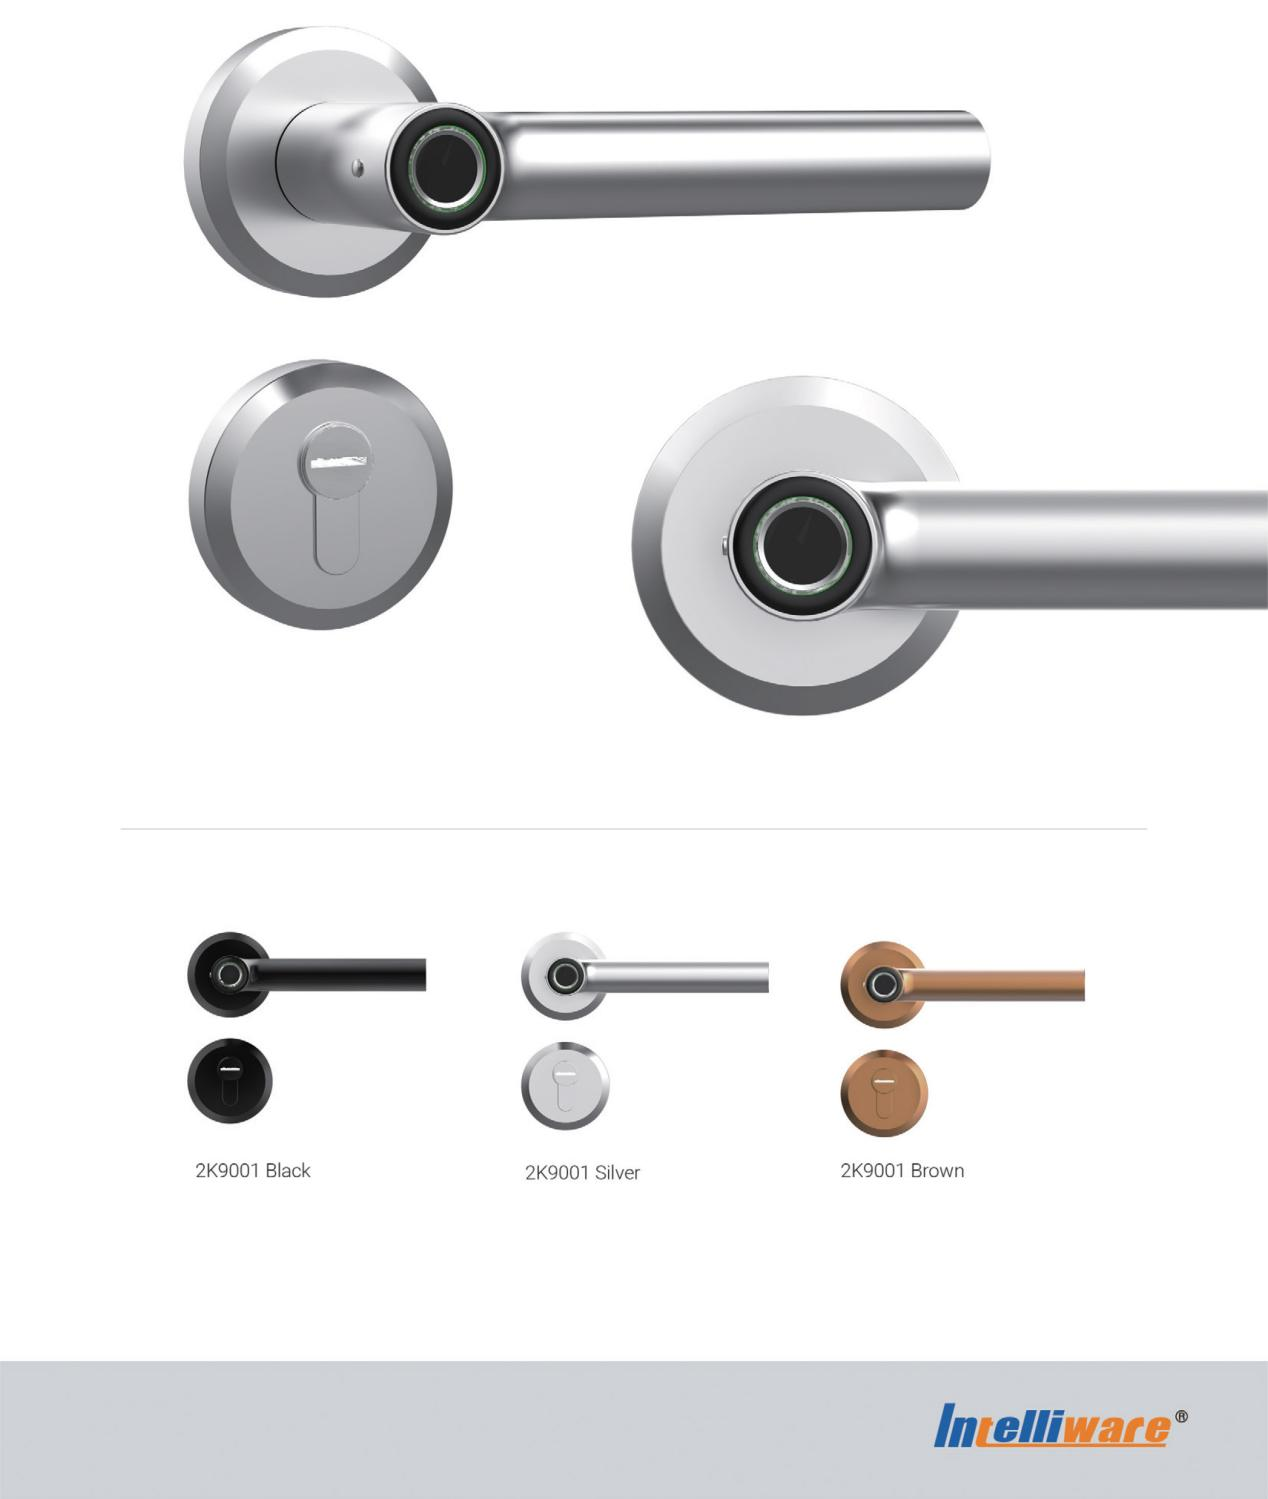 Intelligent digital door lock - a powerful security for home